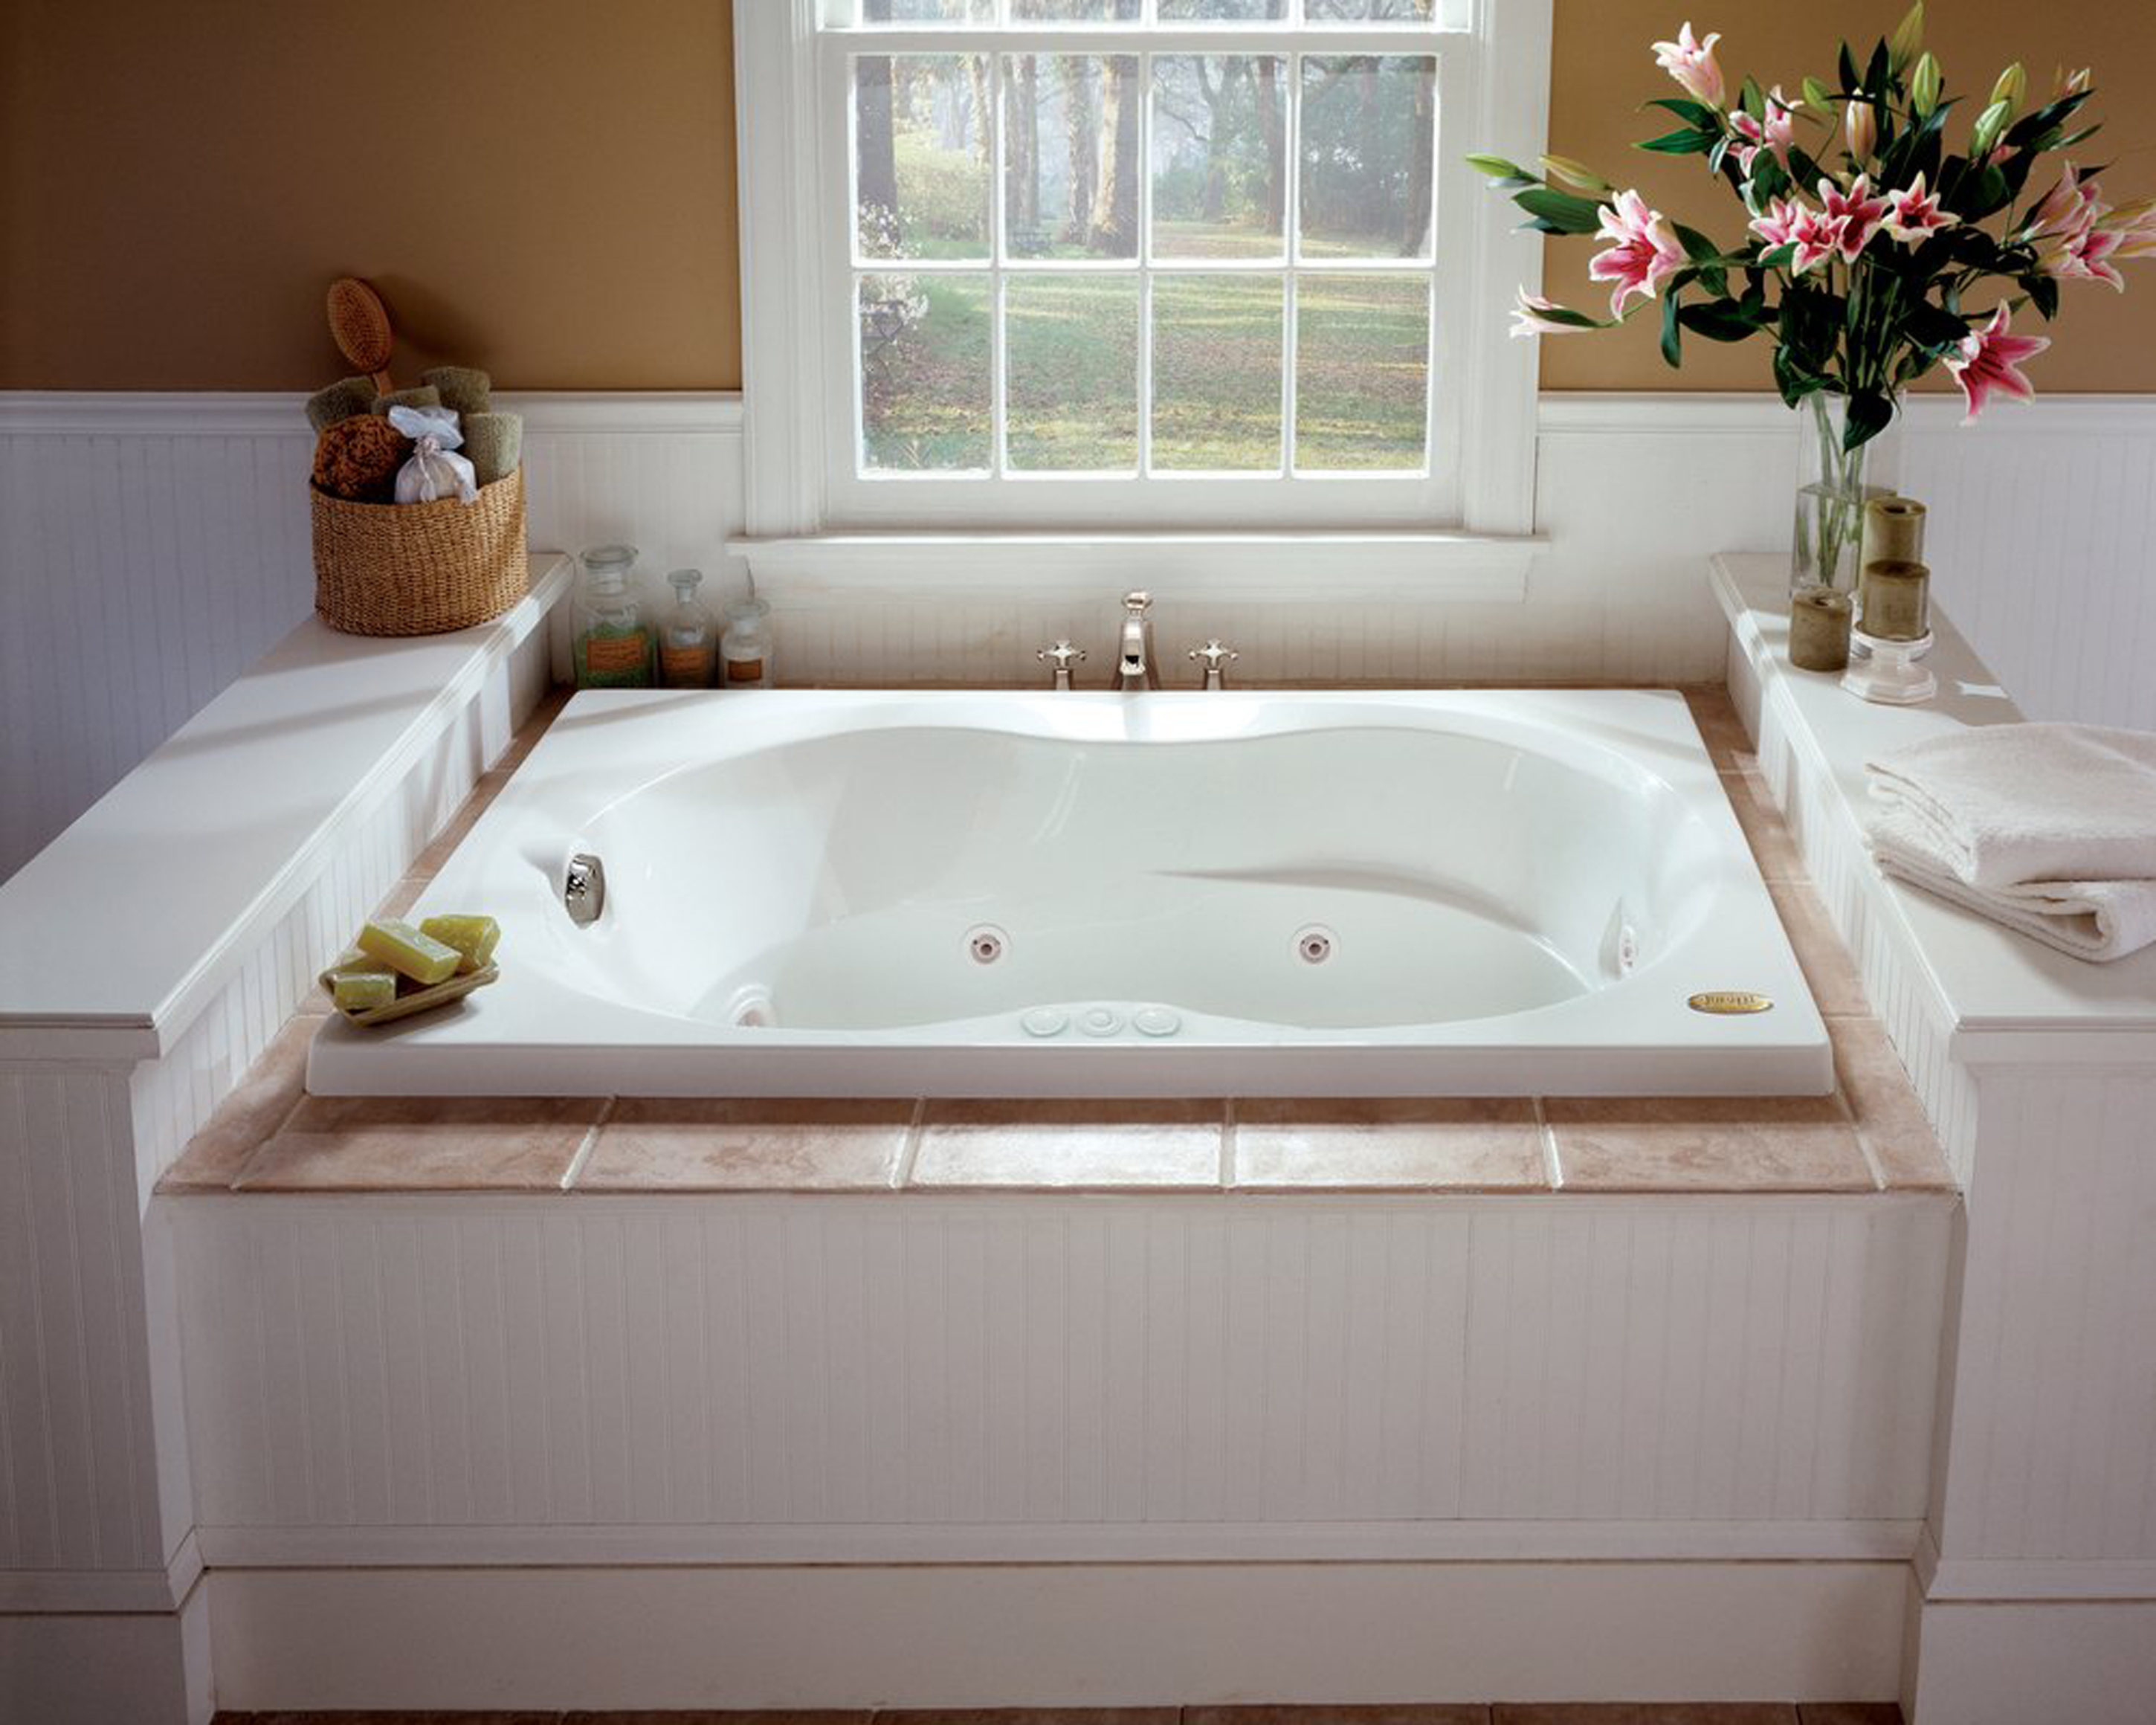 Sweet Modern Jacuzzi Tub Design Bathroom Idea In White With Pink Flowers In The Glass Vase Brown Wall And White Window Frame Elegant Modern Jacuzzi Tub Design Bathroom Ideas (View 8 of 23)